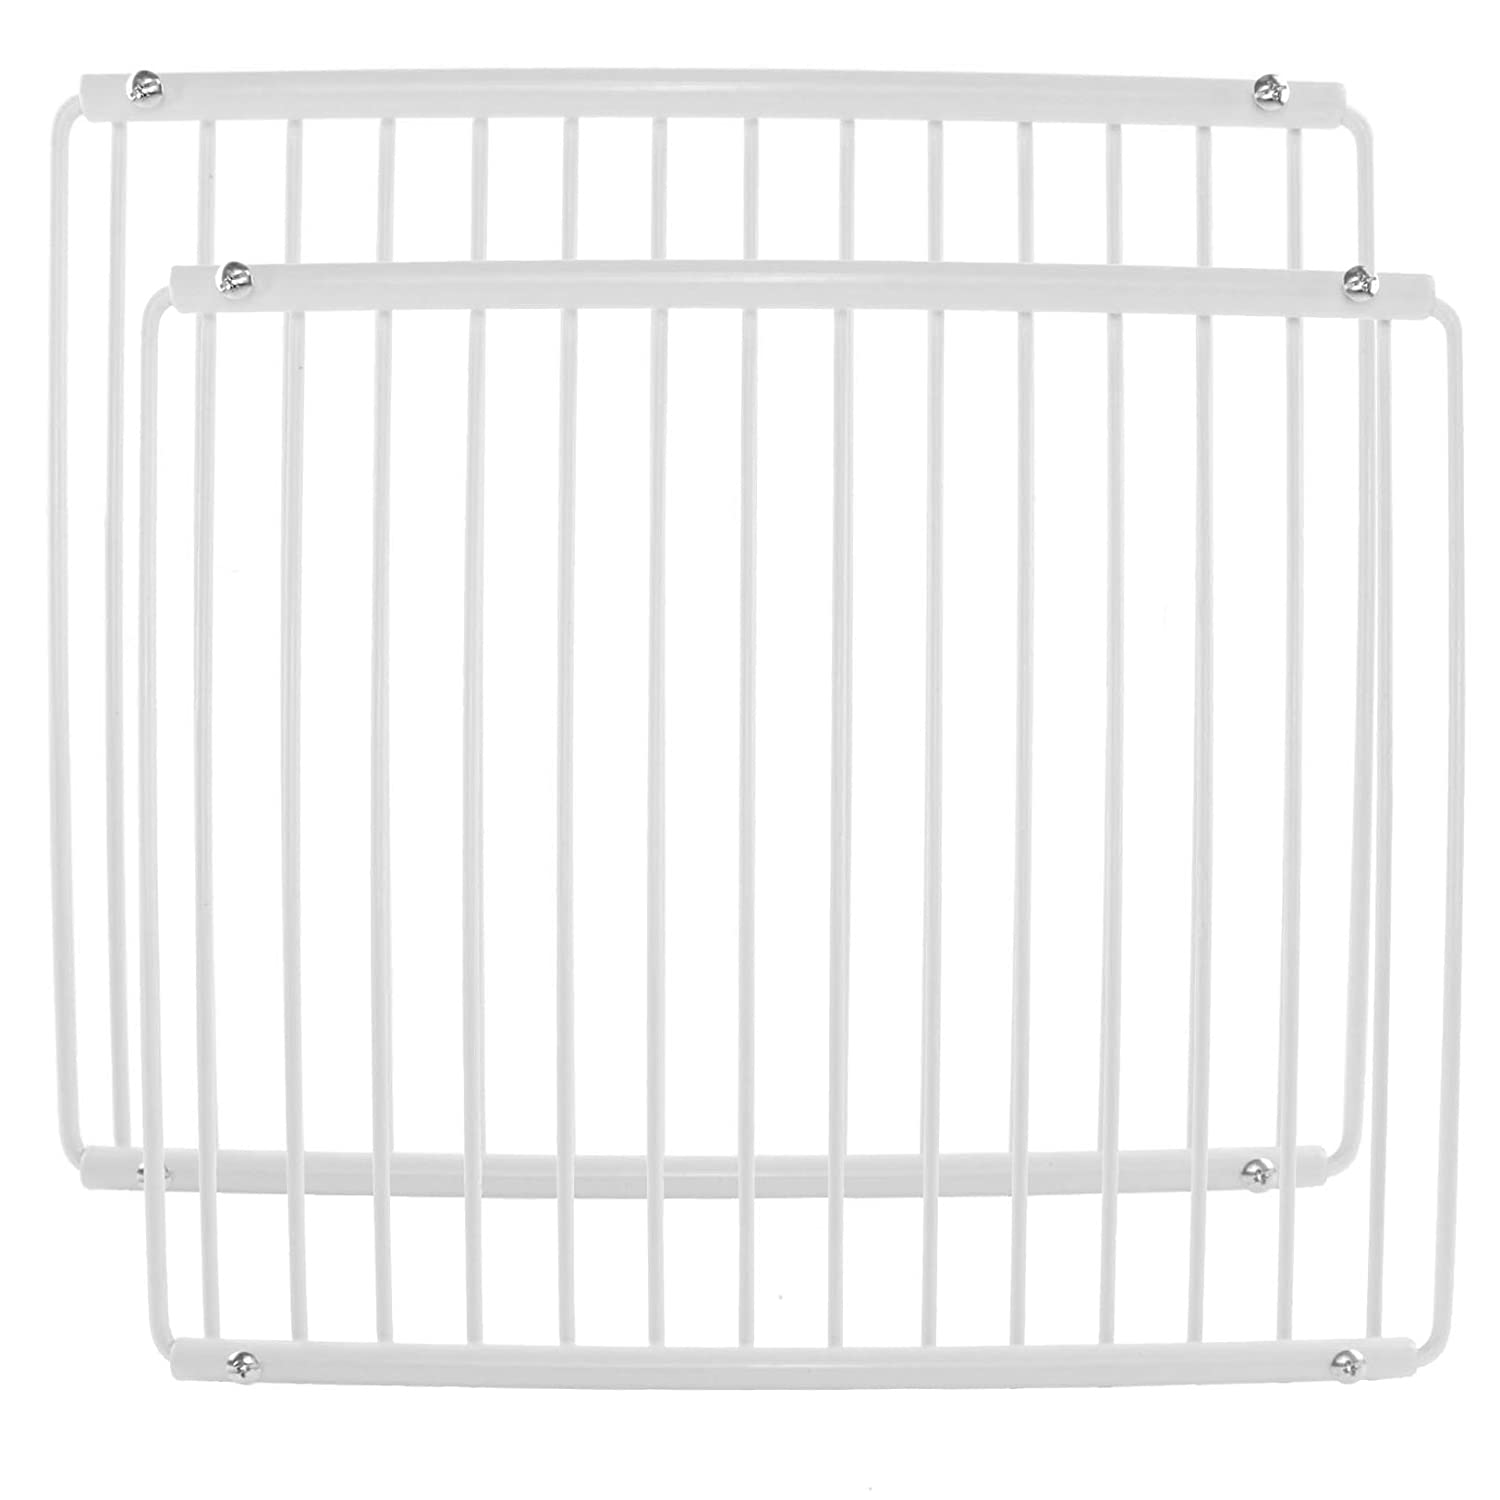 Spares2go Plastic Coated Shelf Rack for Liebherr Fridge Freezers (White, Pack of 2)